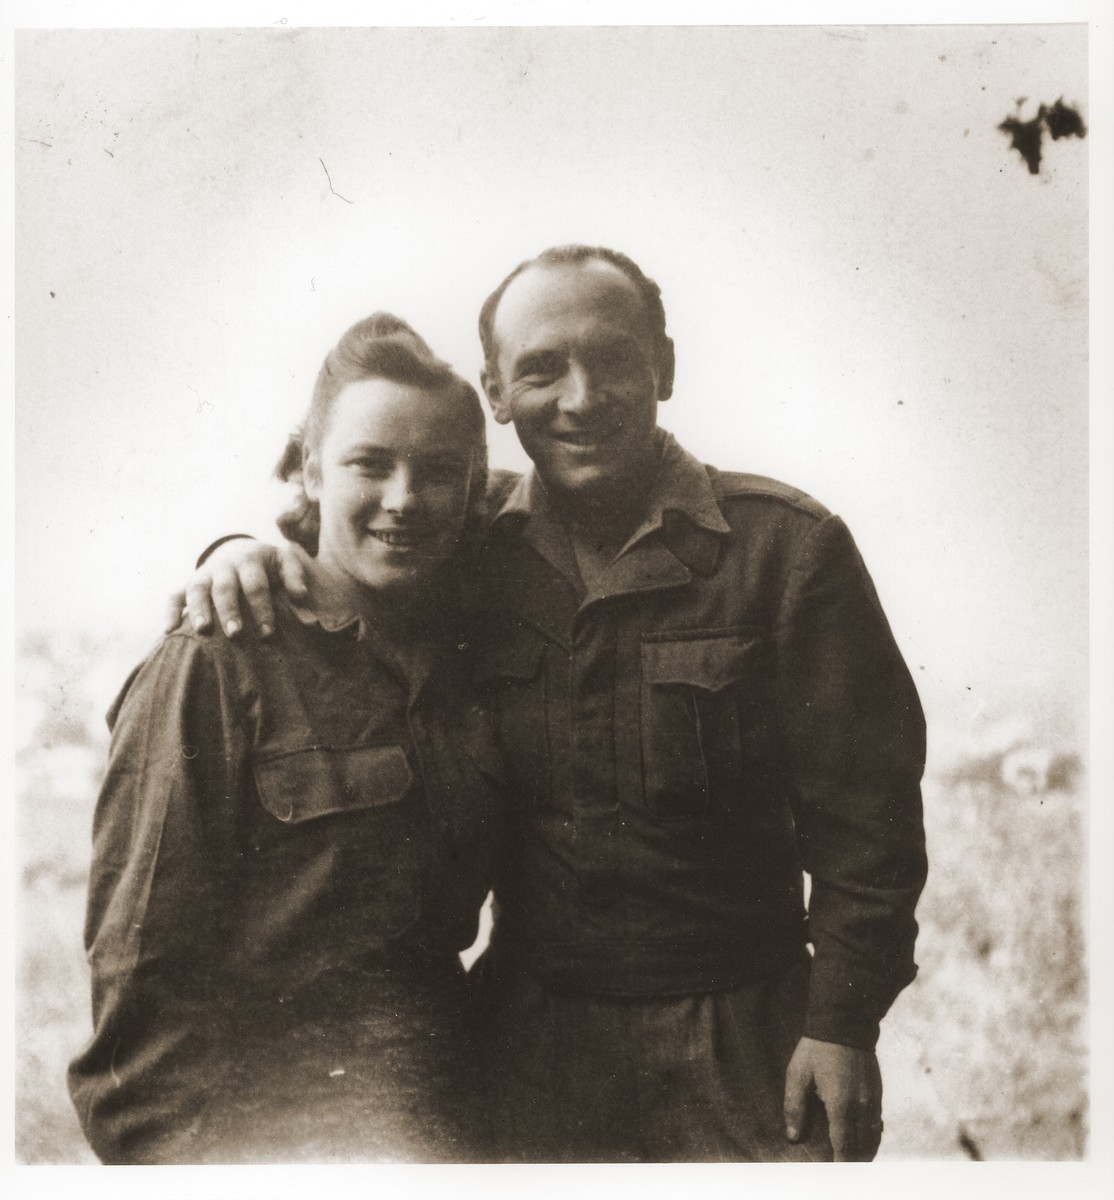 Portrait of Saba and Julek Fiszman after their reunion in Santa Maria di Bagni, Italy.